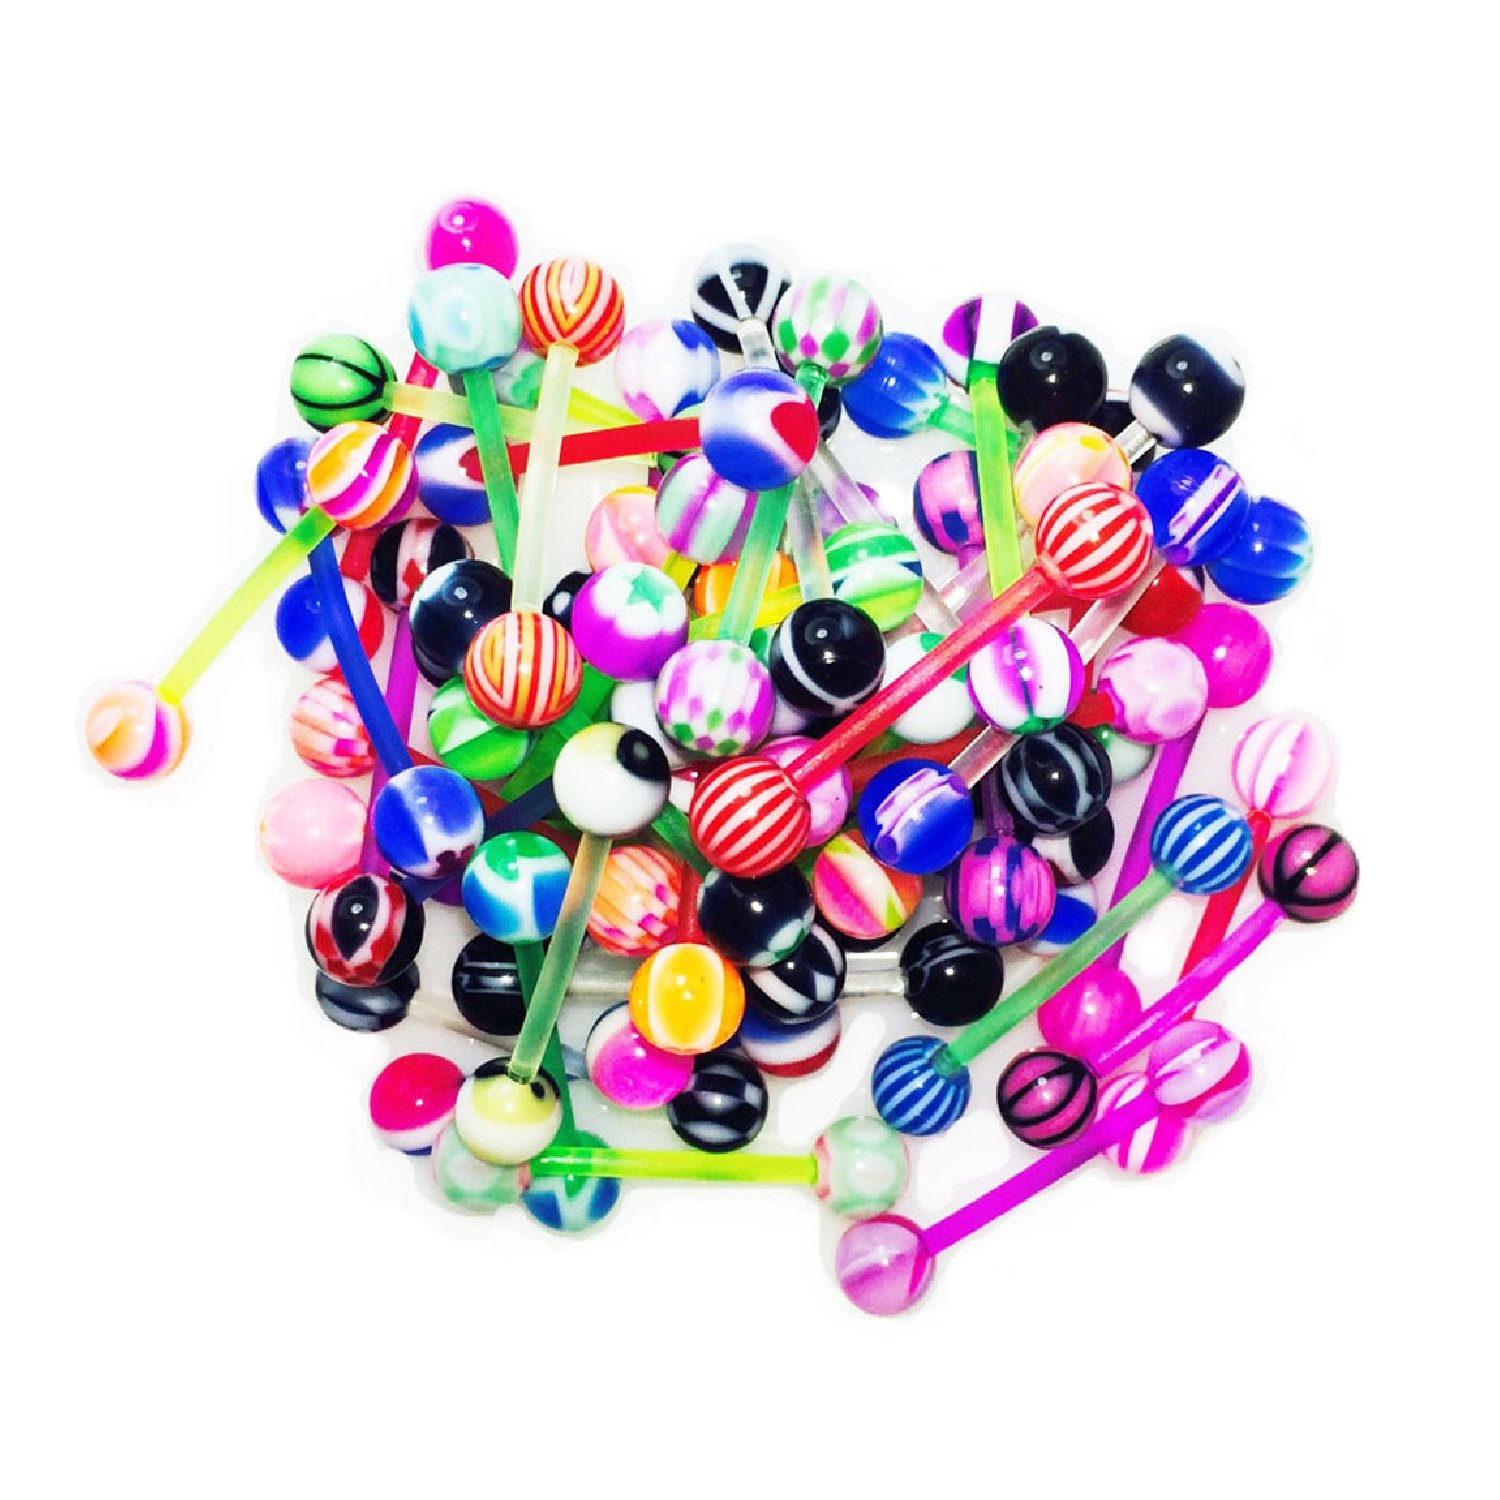 BodyJ4You 100PC 14G Mixed Tongue Rings Flexible Straight Barbell Body Piercing Jewelry Lot by BodyJ4You (Image #6)